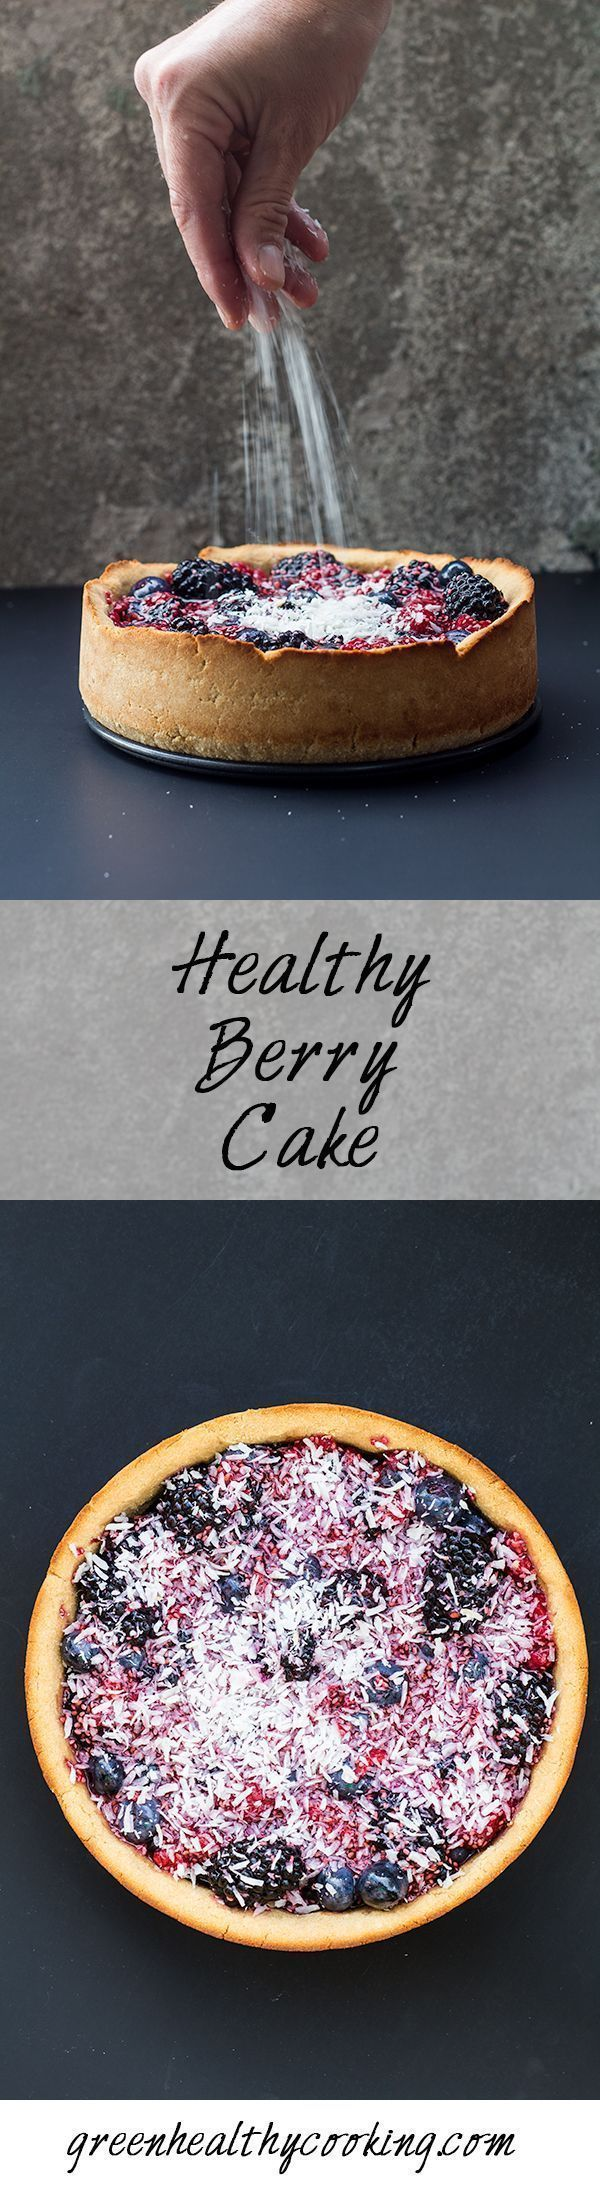 Looking for a delicious gluten-free, refined-sugar-free, chia and nutrition loaded Healthy Berry Cake? Look no further. You found it!